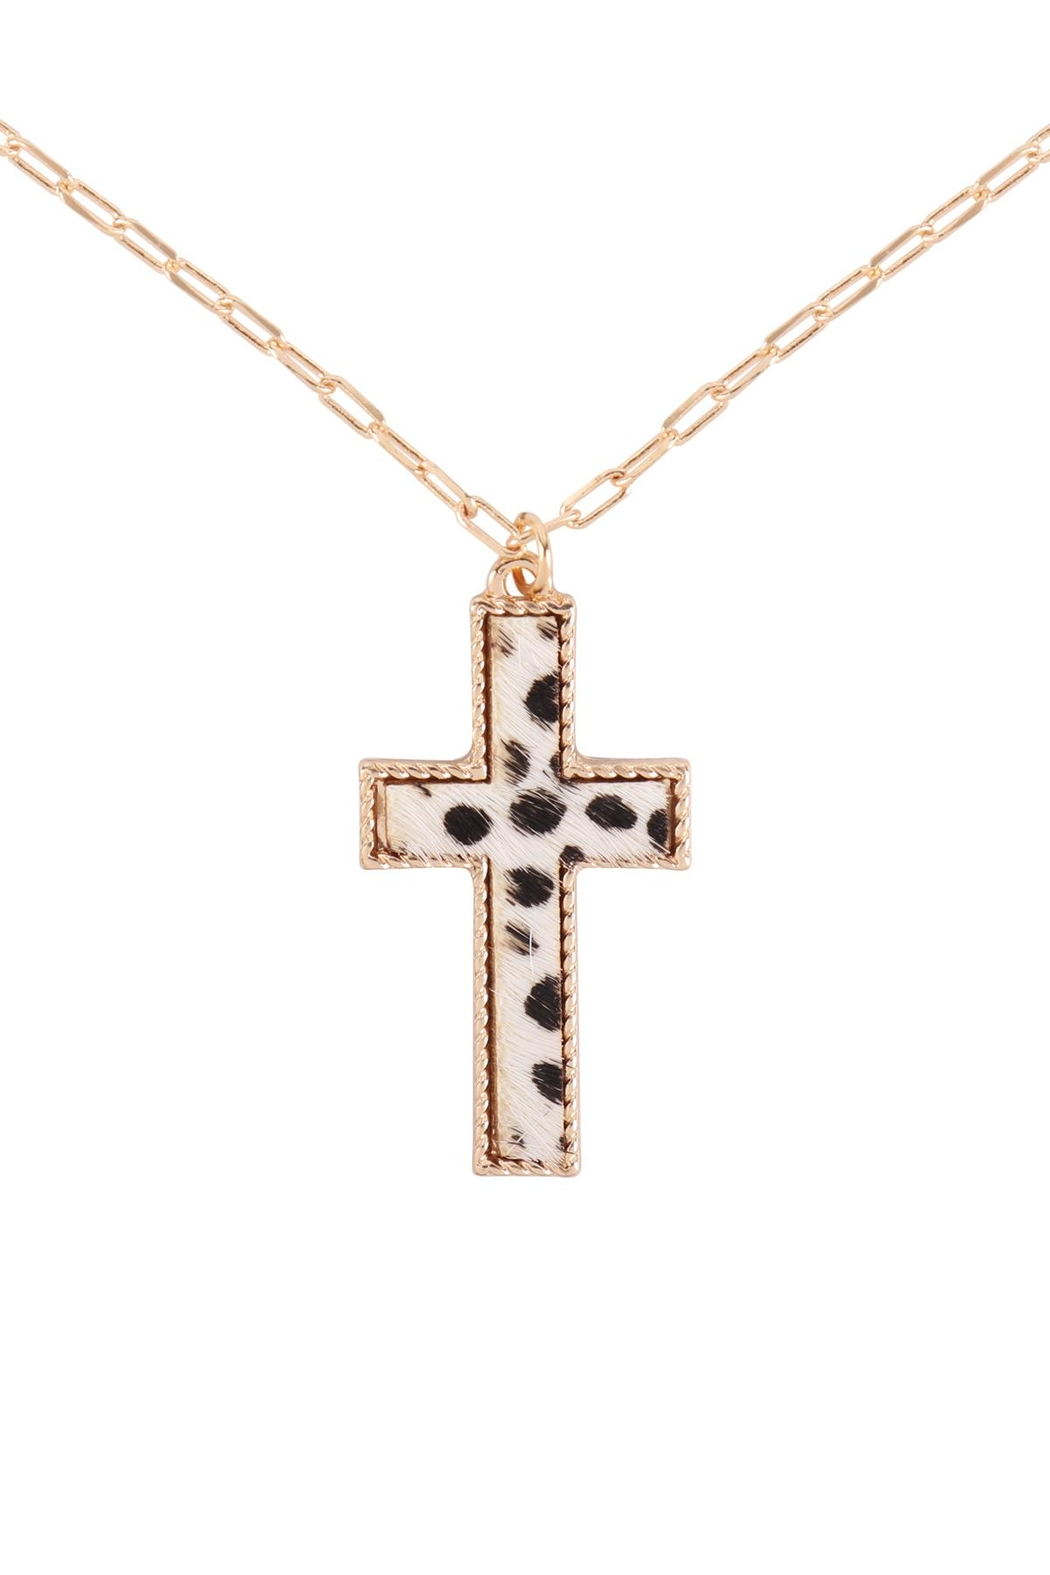 Riah Fashion Cross-Shape-Real-Calf-Hair-Leather-Layered-Necklace - Main Image